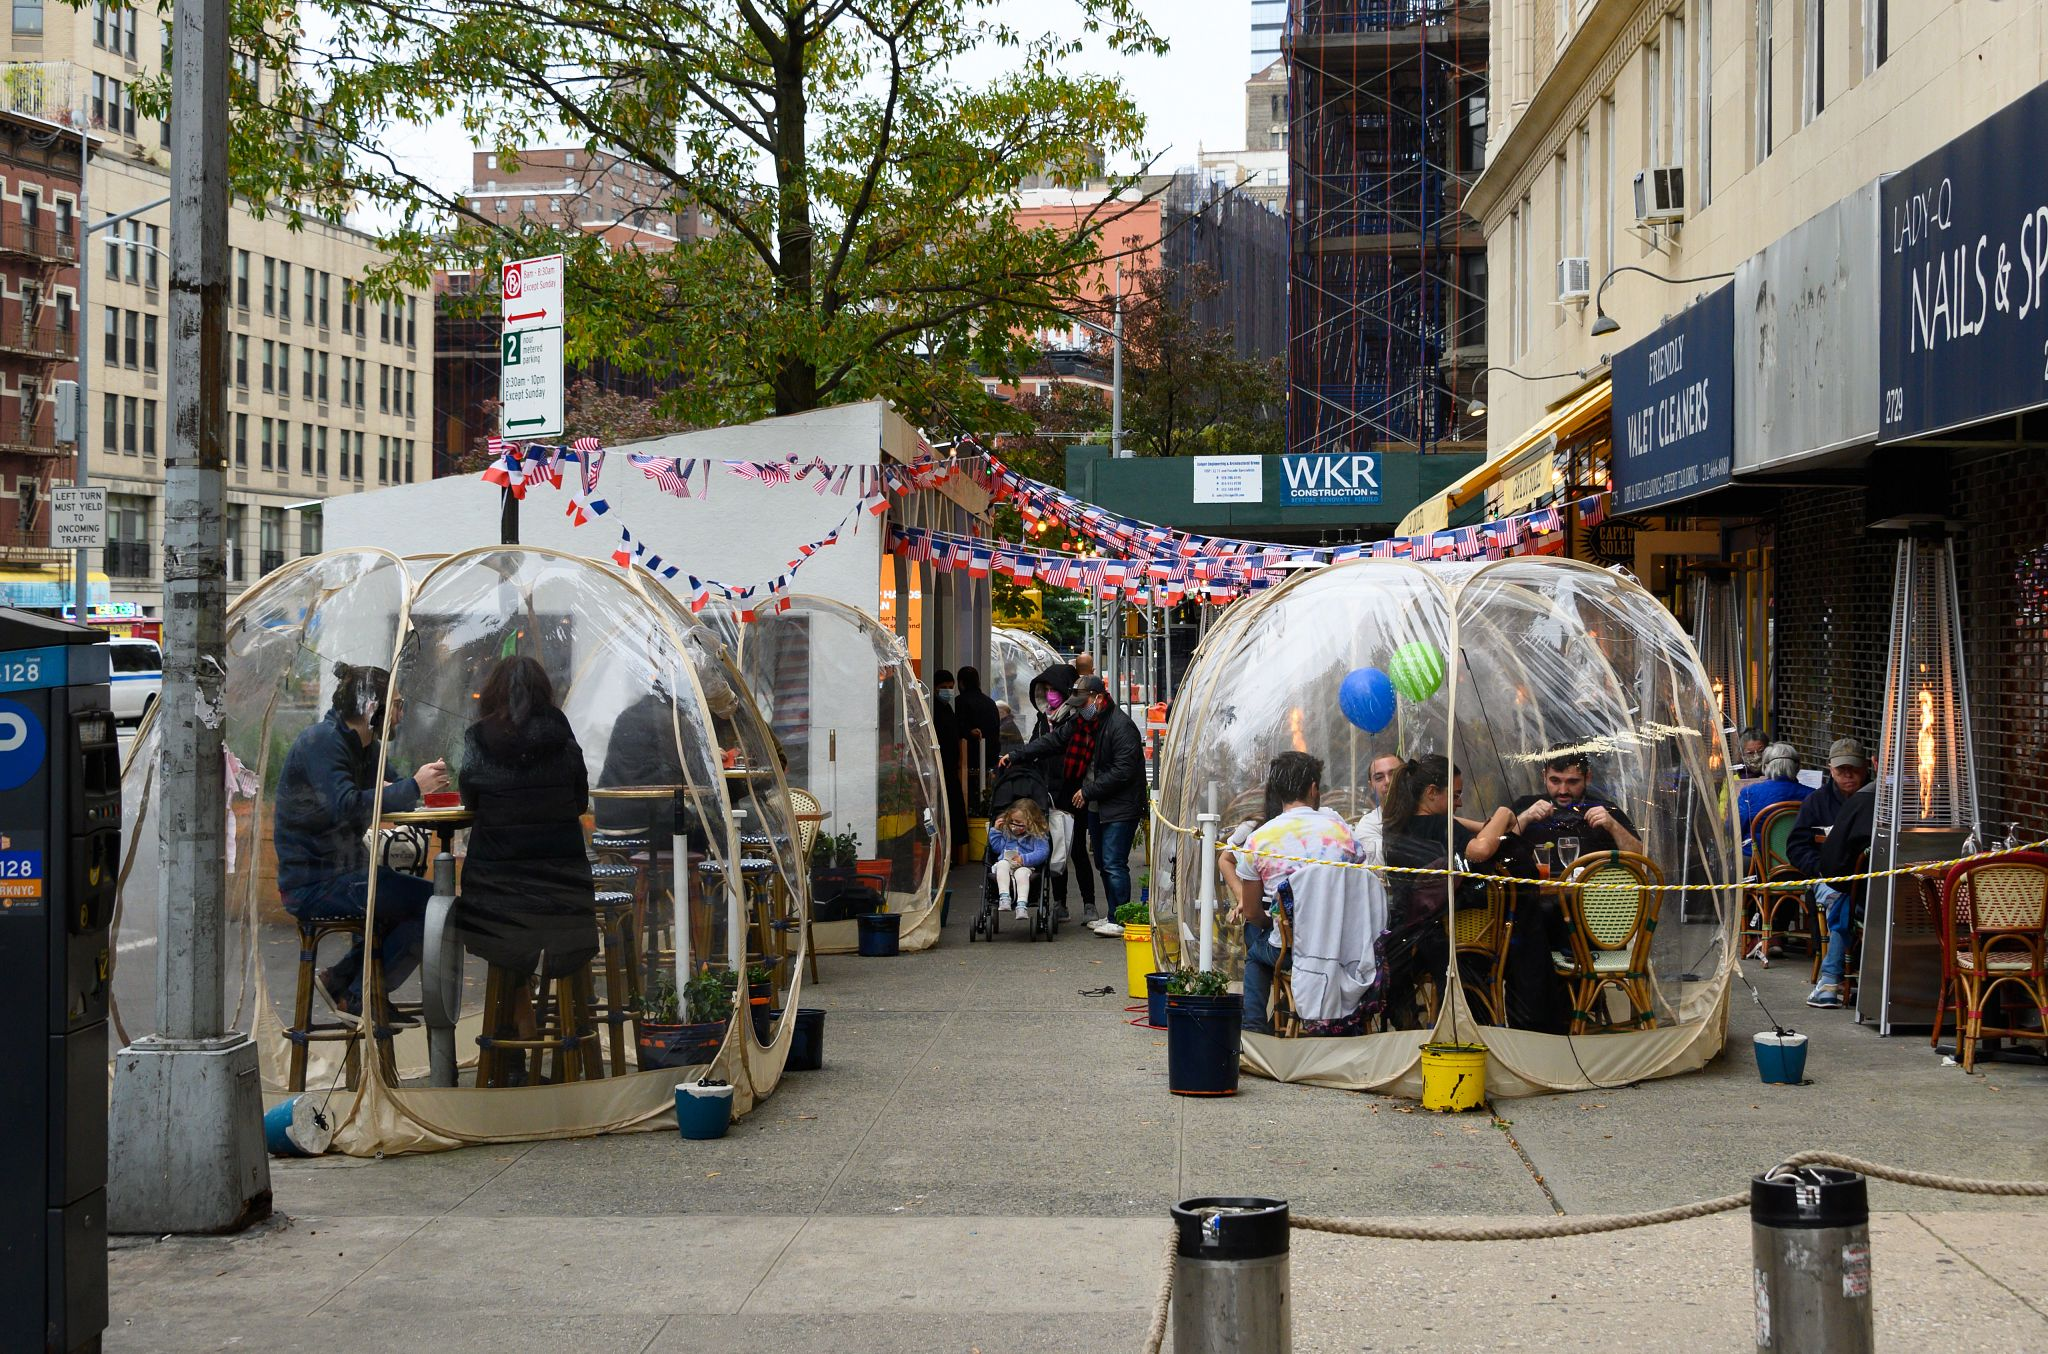 People dine in social-distancing bubble tents at the Cafe Du Soleil restaurant on the Upper West Side as New York City imposes restrictions to slow the spread of coronavirus. (Noam Galai/Getty Images)